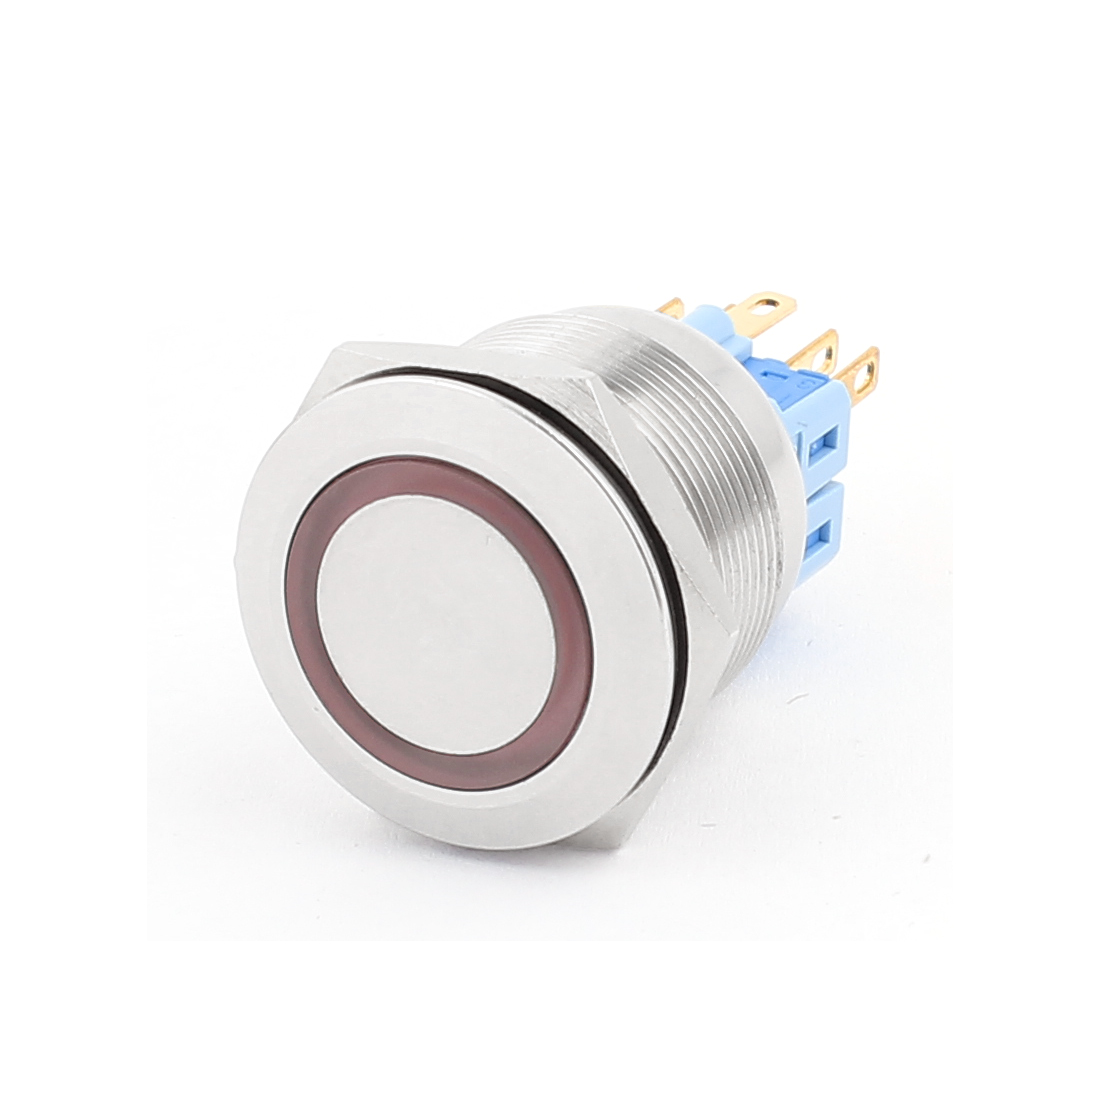 12V 25mm Dia Thread Red LED Angle Eyes Latching Metal Pushbutton Switch